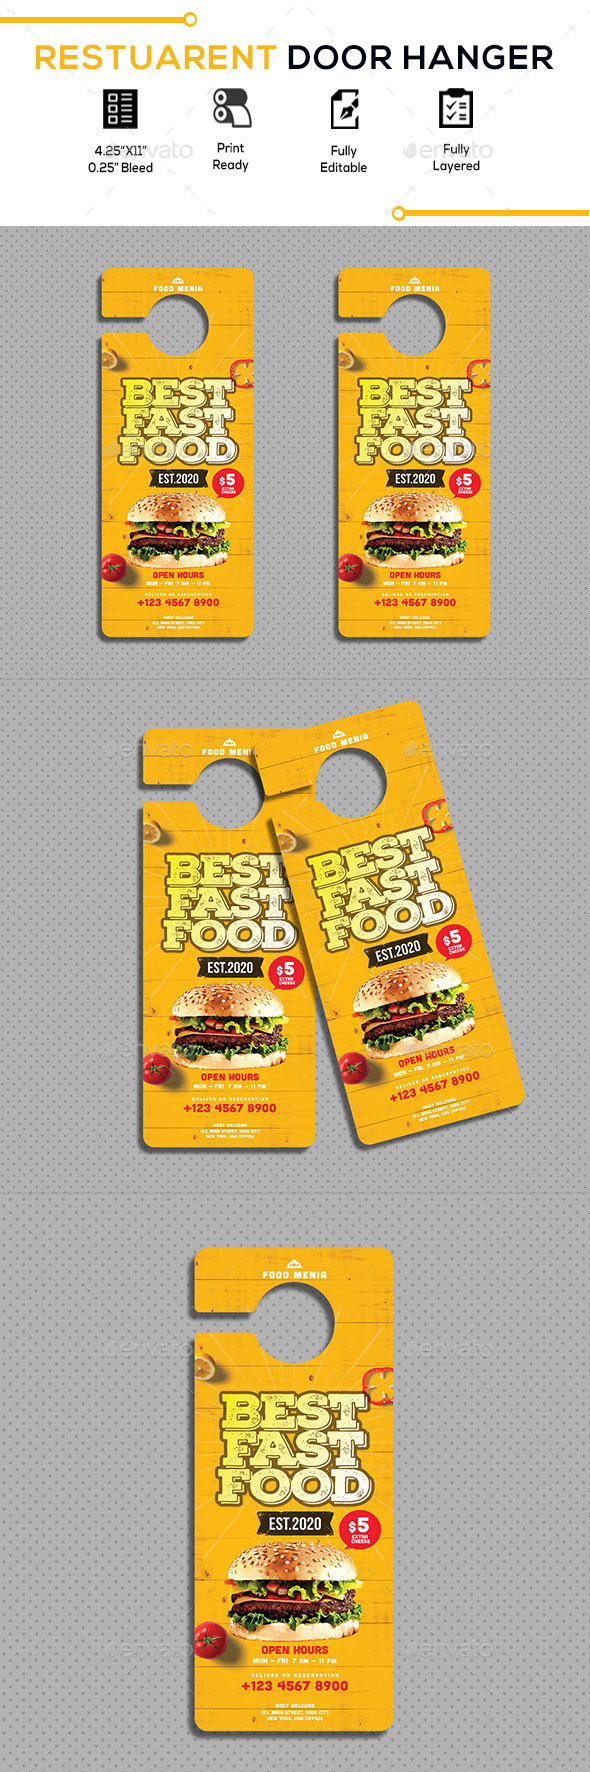 Restaurant Door Hanger - Miscellaneous Print Templates